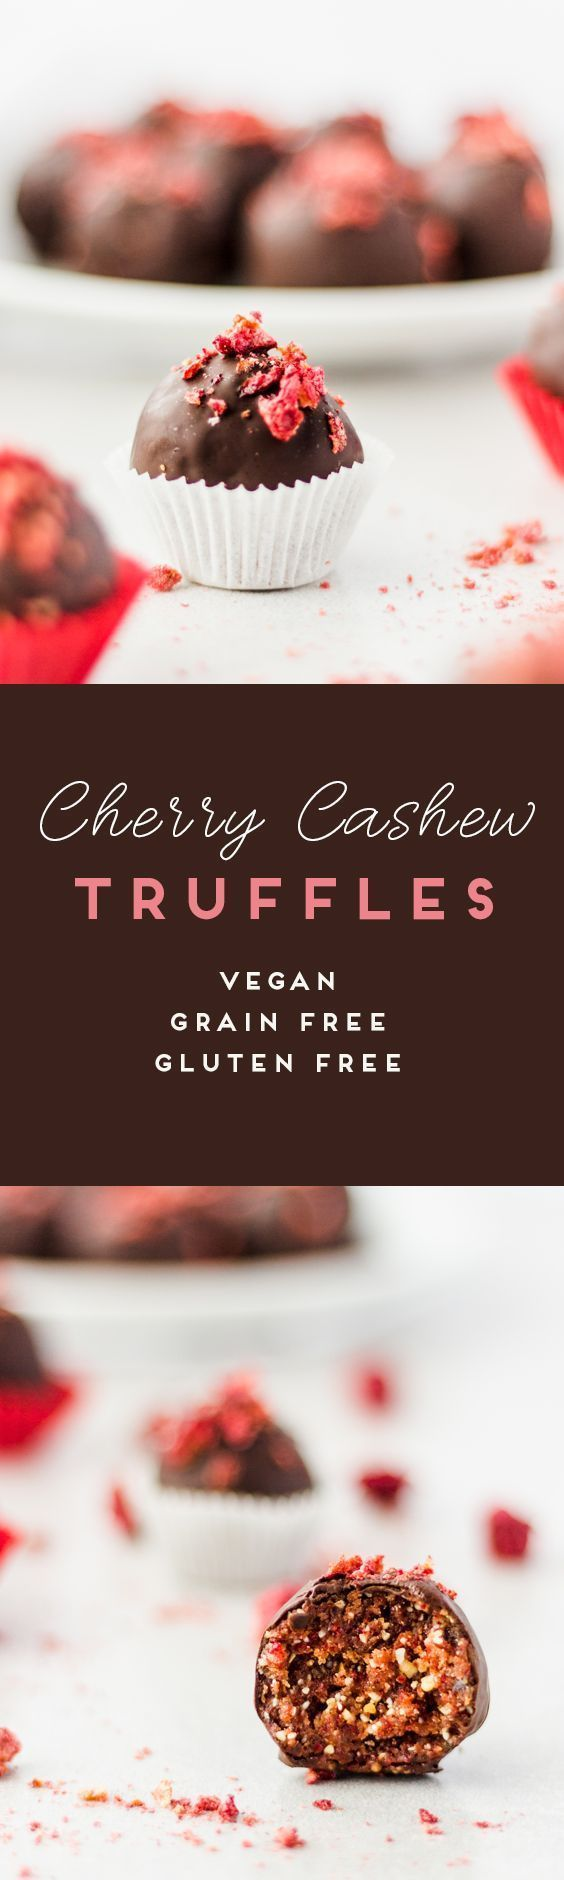 These cherry cashew truffles are made with freeze dried raspberries. They are naturally sweetened with dates and covered in decadent dark chocolate.  #vegan #glutenfree #vegan #vegandessert #vegansnack #truffles #healthydessert #freezedriedraspberries These cherry cashew truffles are made with freeze dried raspberries. They are naturally sweetened with dates and covered in decadent dark chocolate.  #vegan #glutenfree #vegan #vegandessert #vegansnack #truffles #healthydessert #freezedriedraspberr #freezedriedraspberries